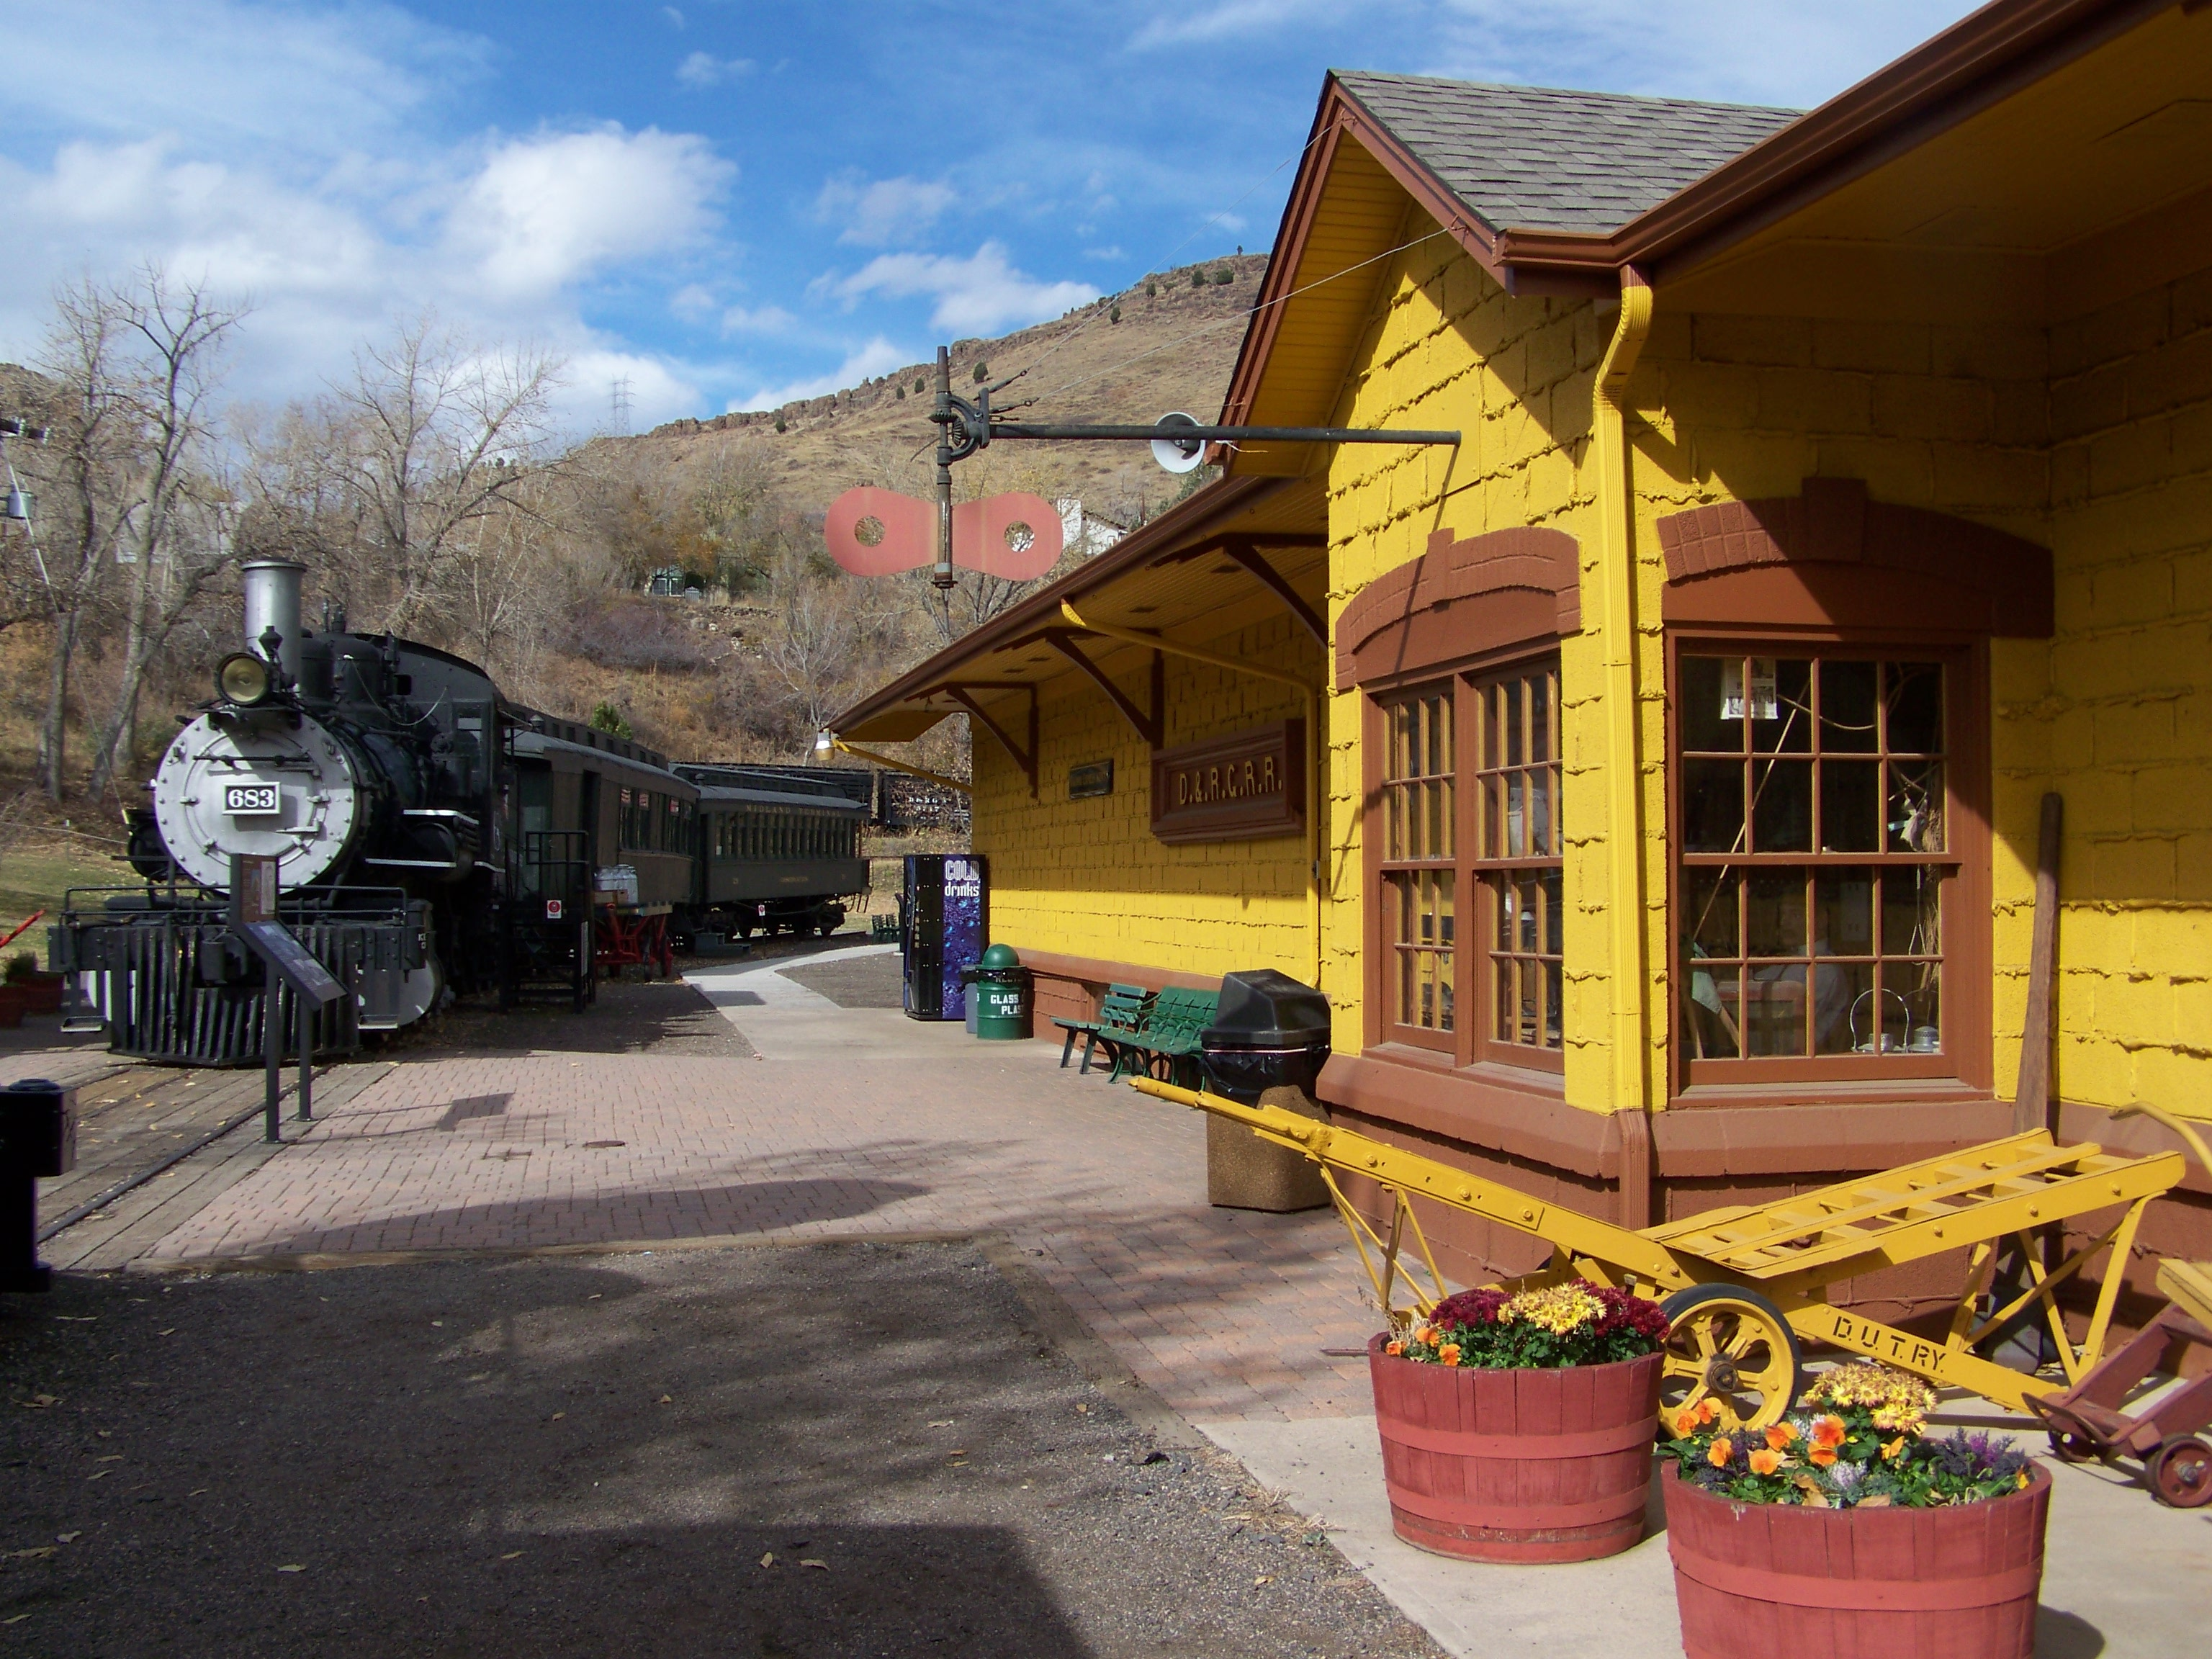 Depot building in front of the museum.